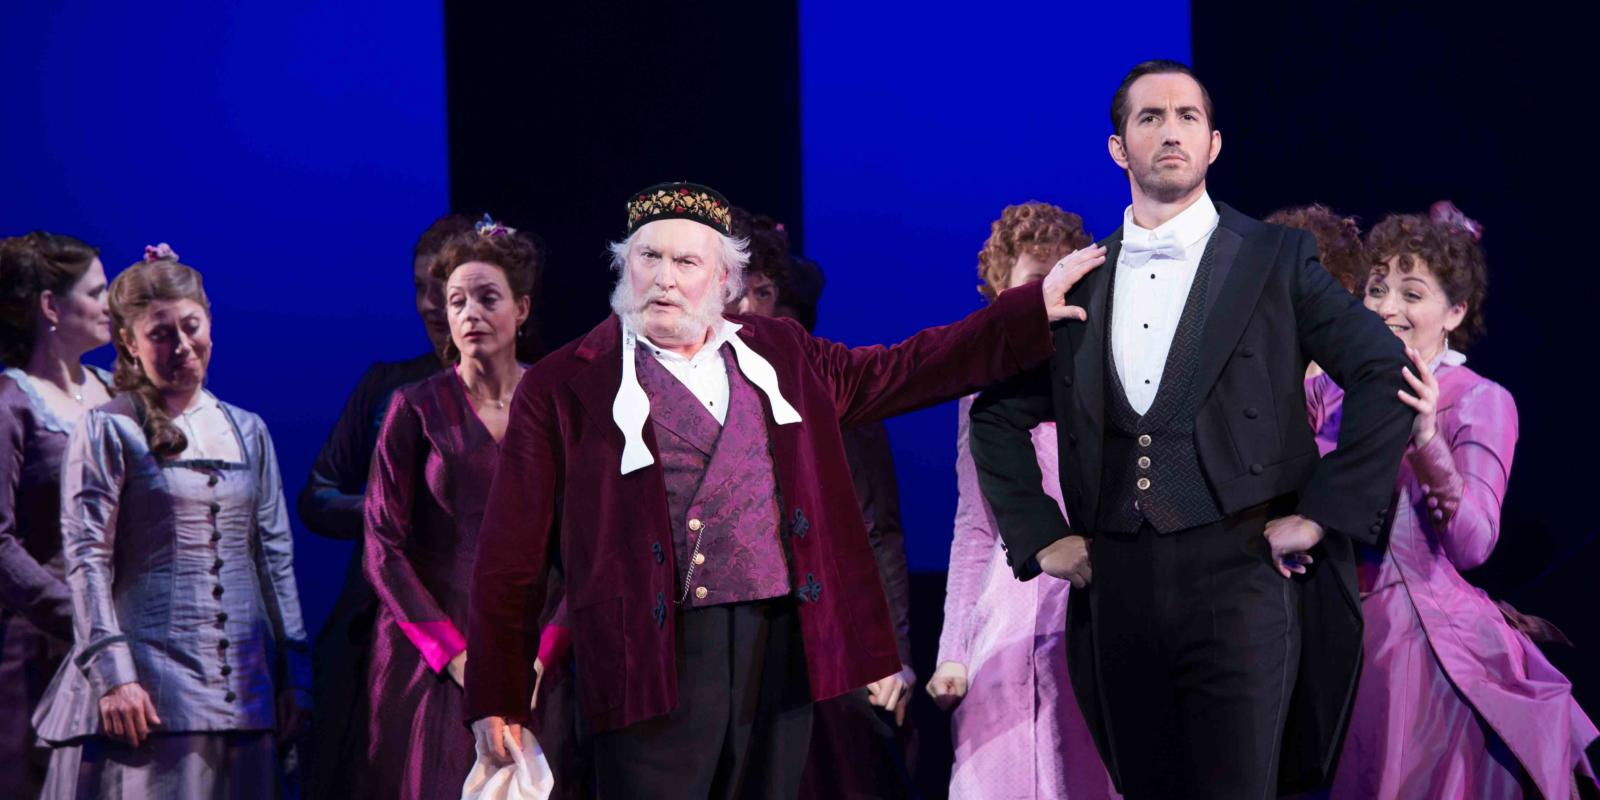 ENO's The Pirates of Penzance - Andrew Shore as the Major-General and David Webb as Frederic. Photo by Tom Bowles